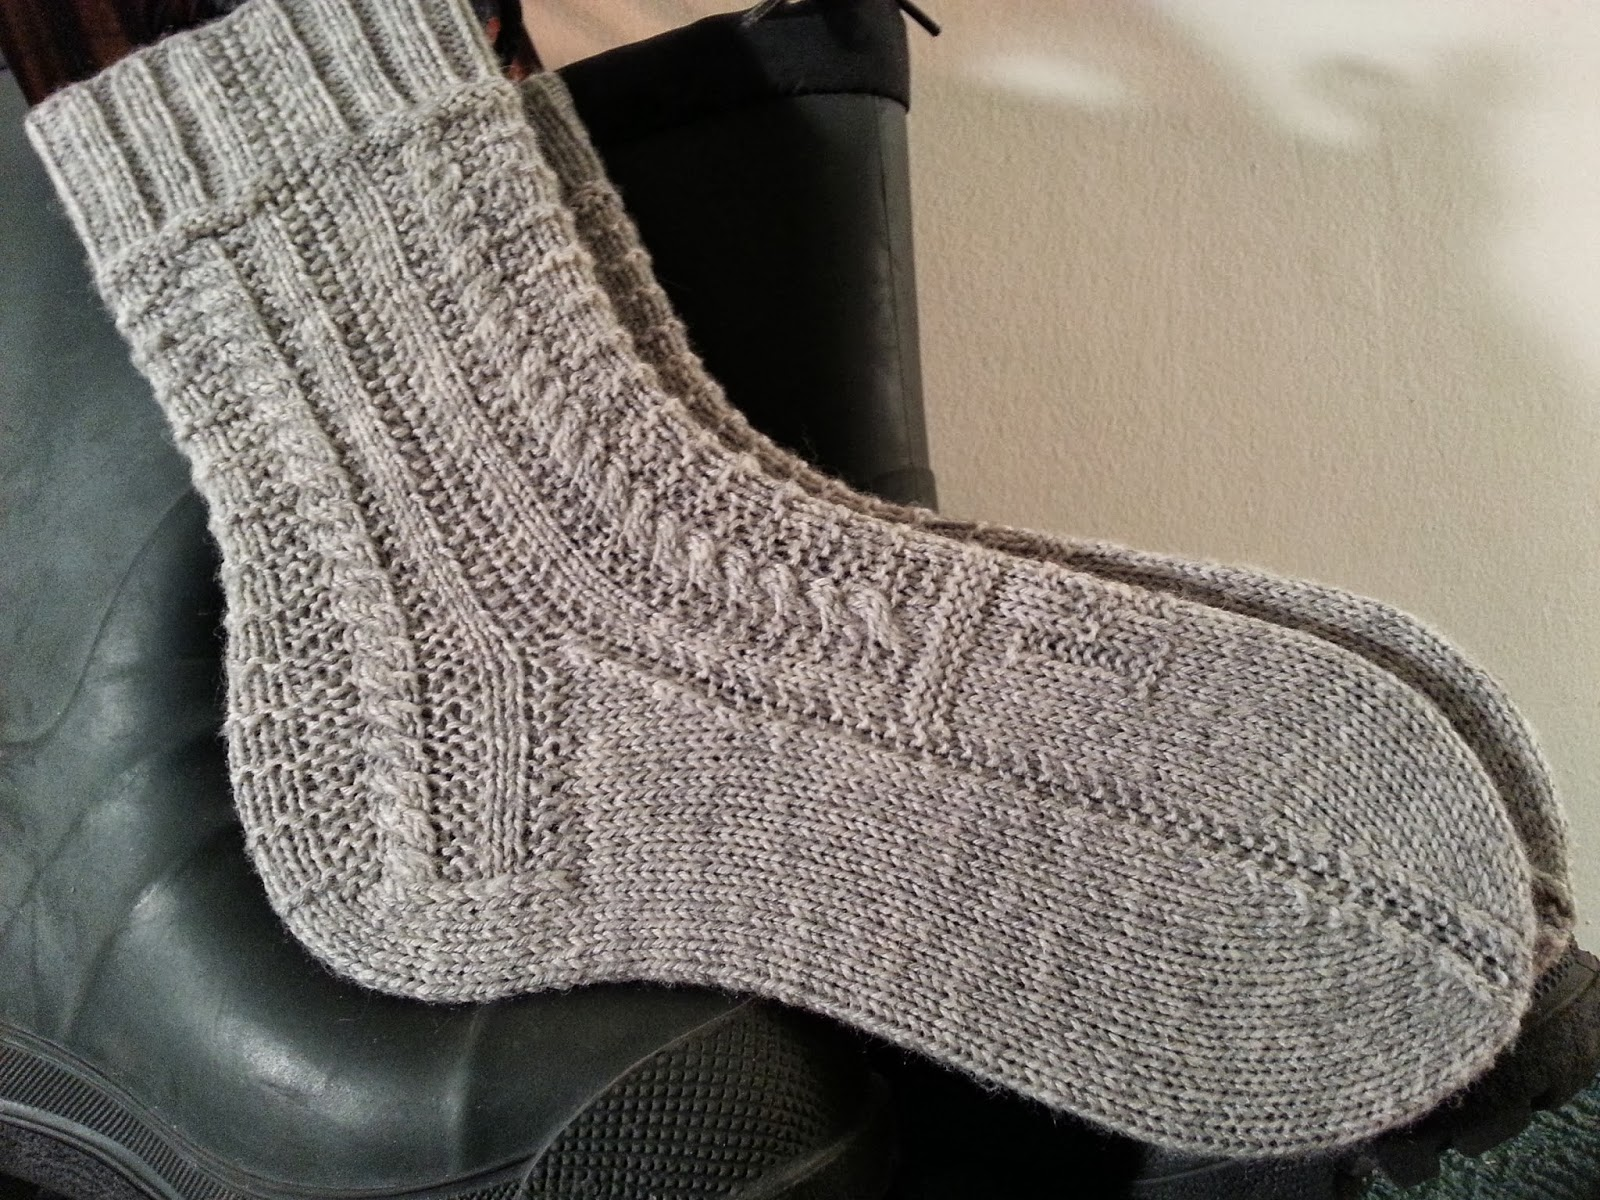 Kate atherley knits a lot mainly socks new old sock pattern traditional gansey pattern stitches make for an attractive interesting to knit but not too challenging sock pattern suitable for both men and women bankloansurffo Image collections